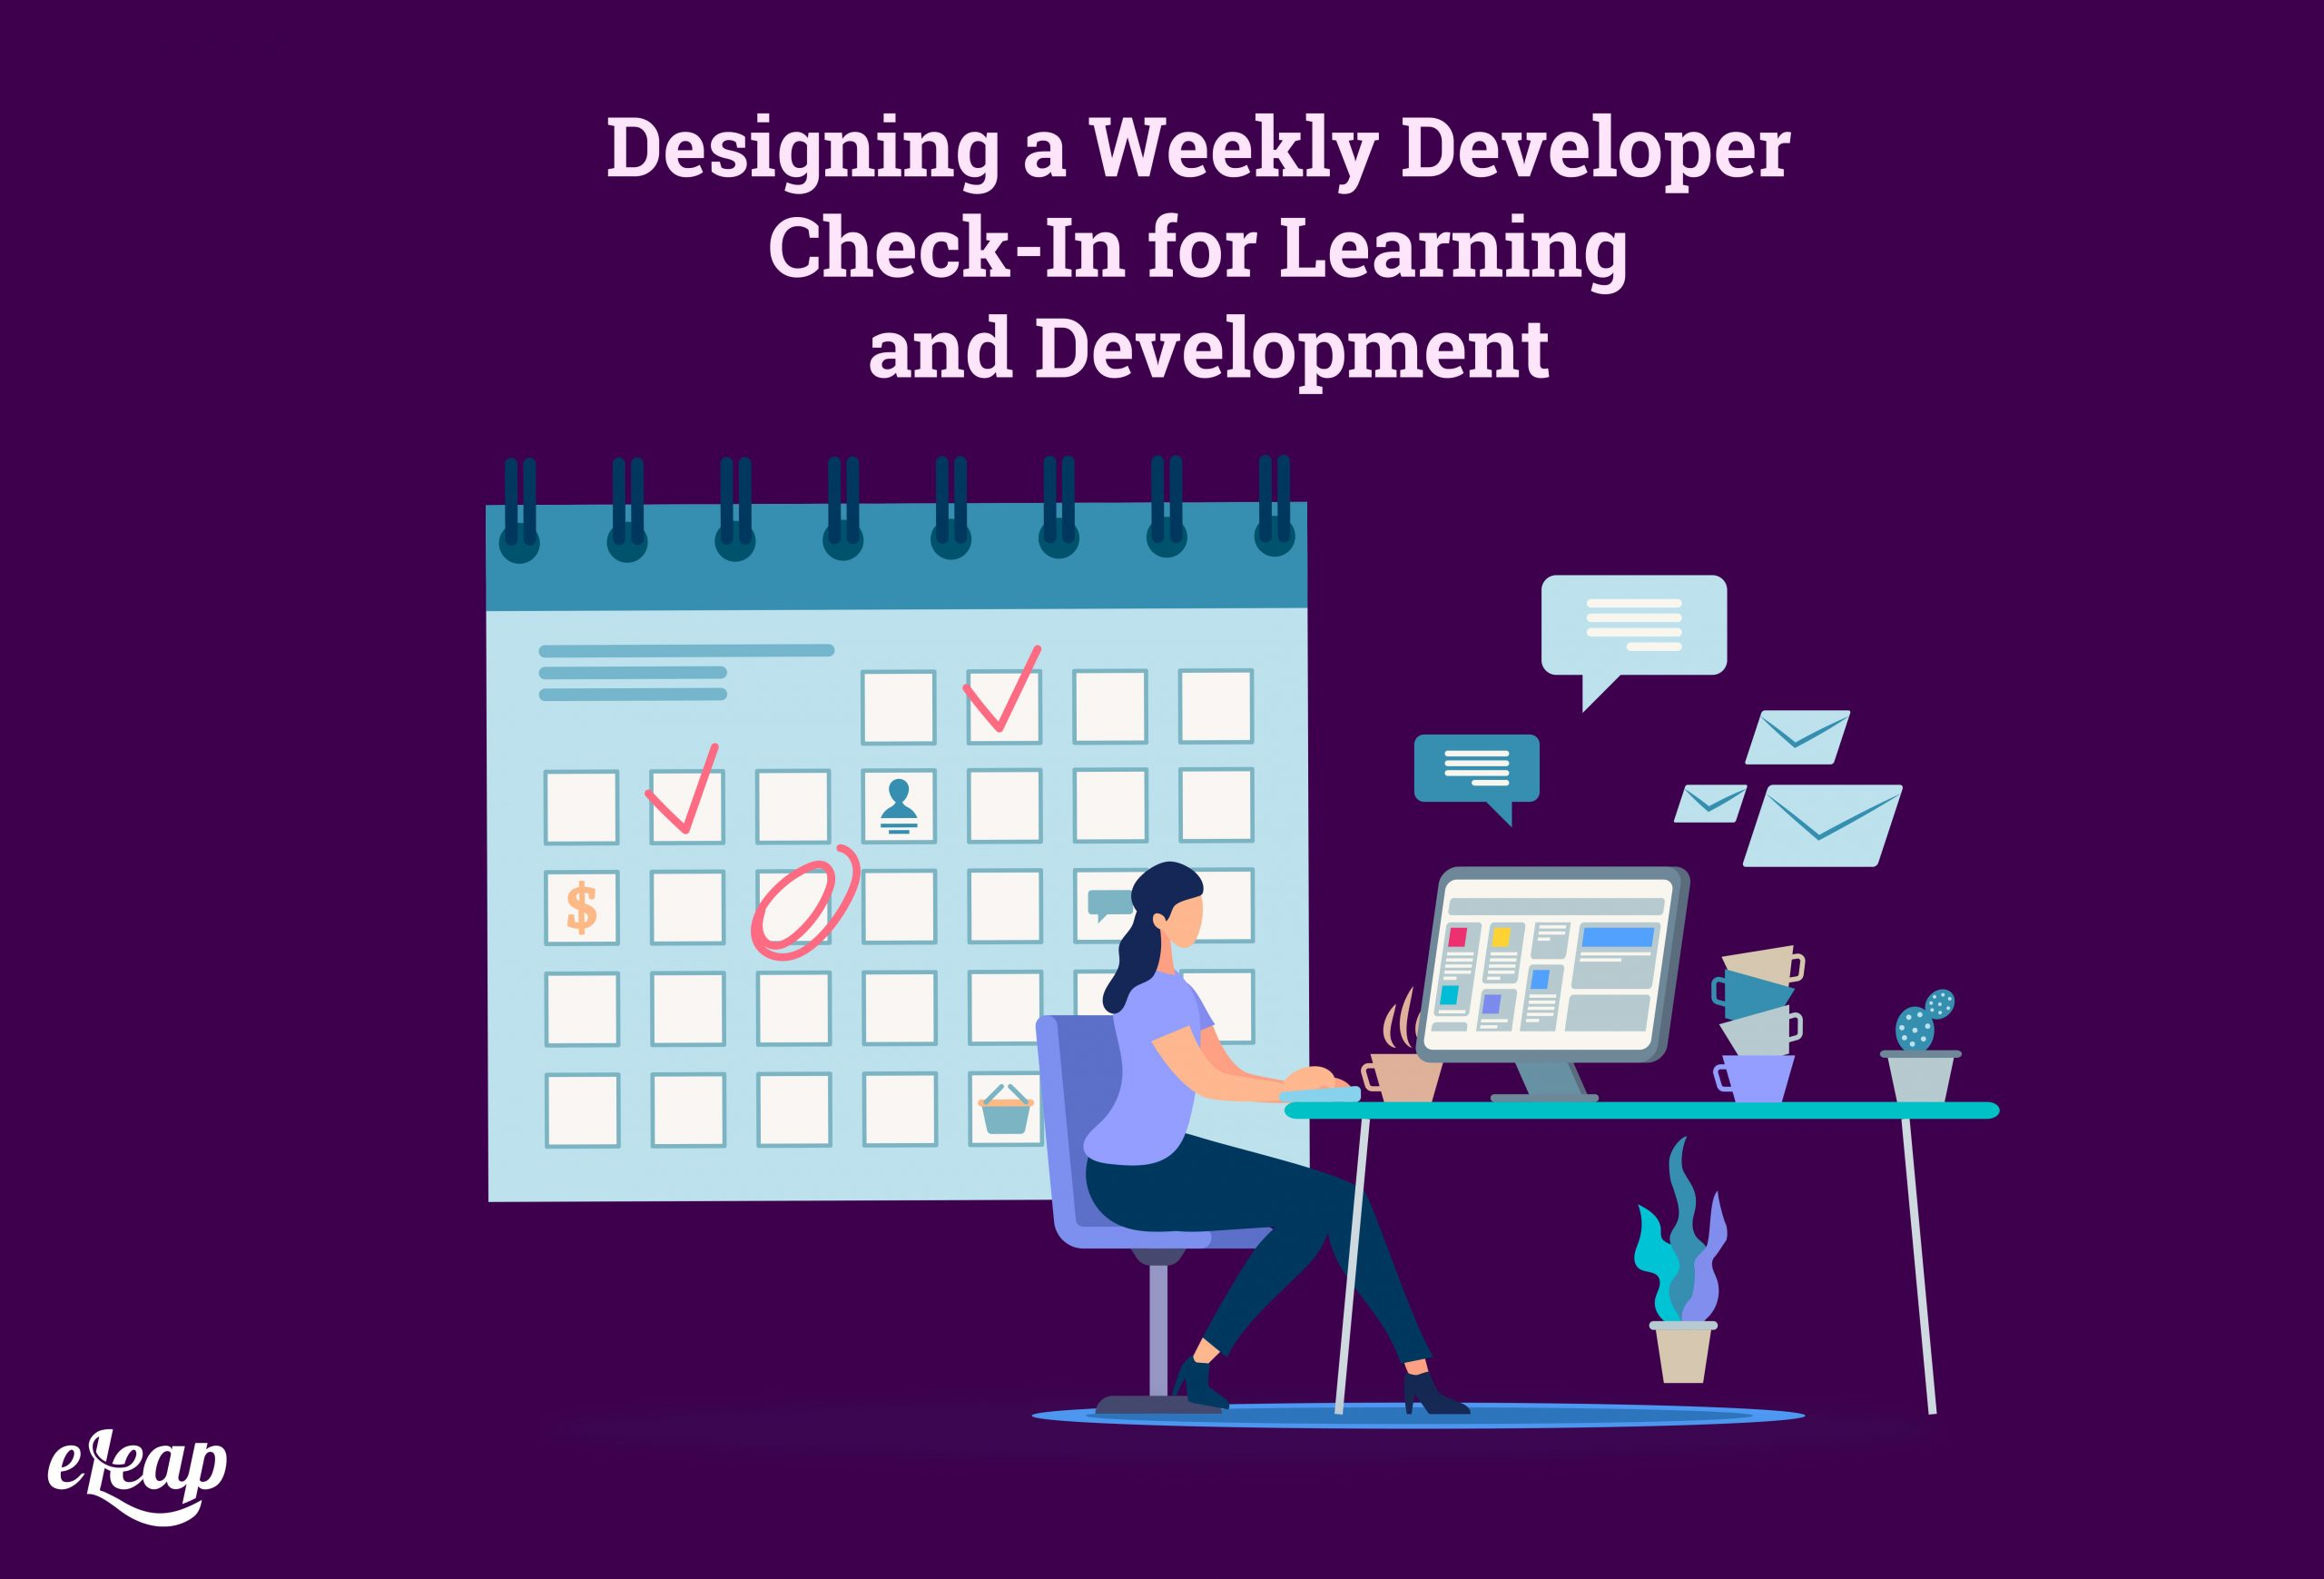 Designing a Weekly Developer Check-In for Learning and Development